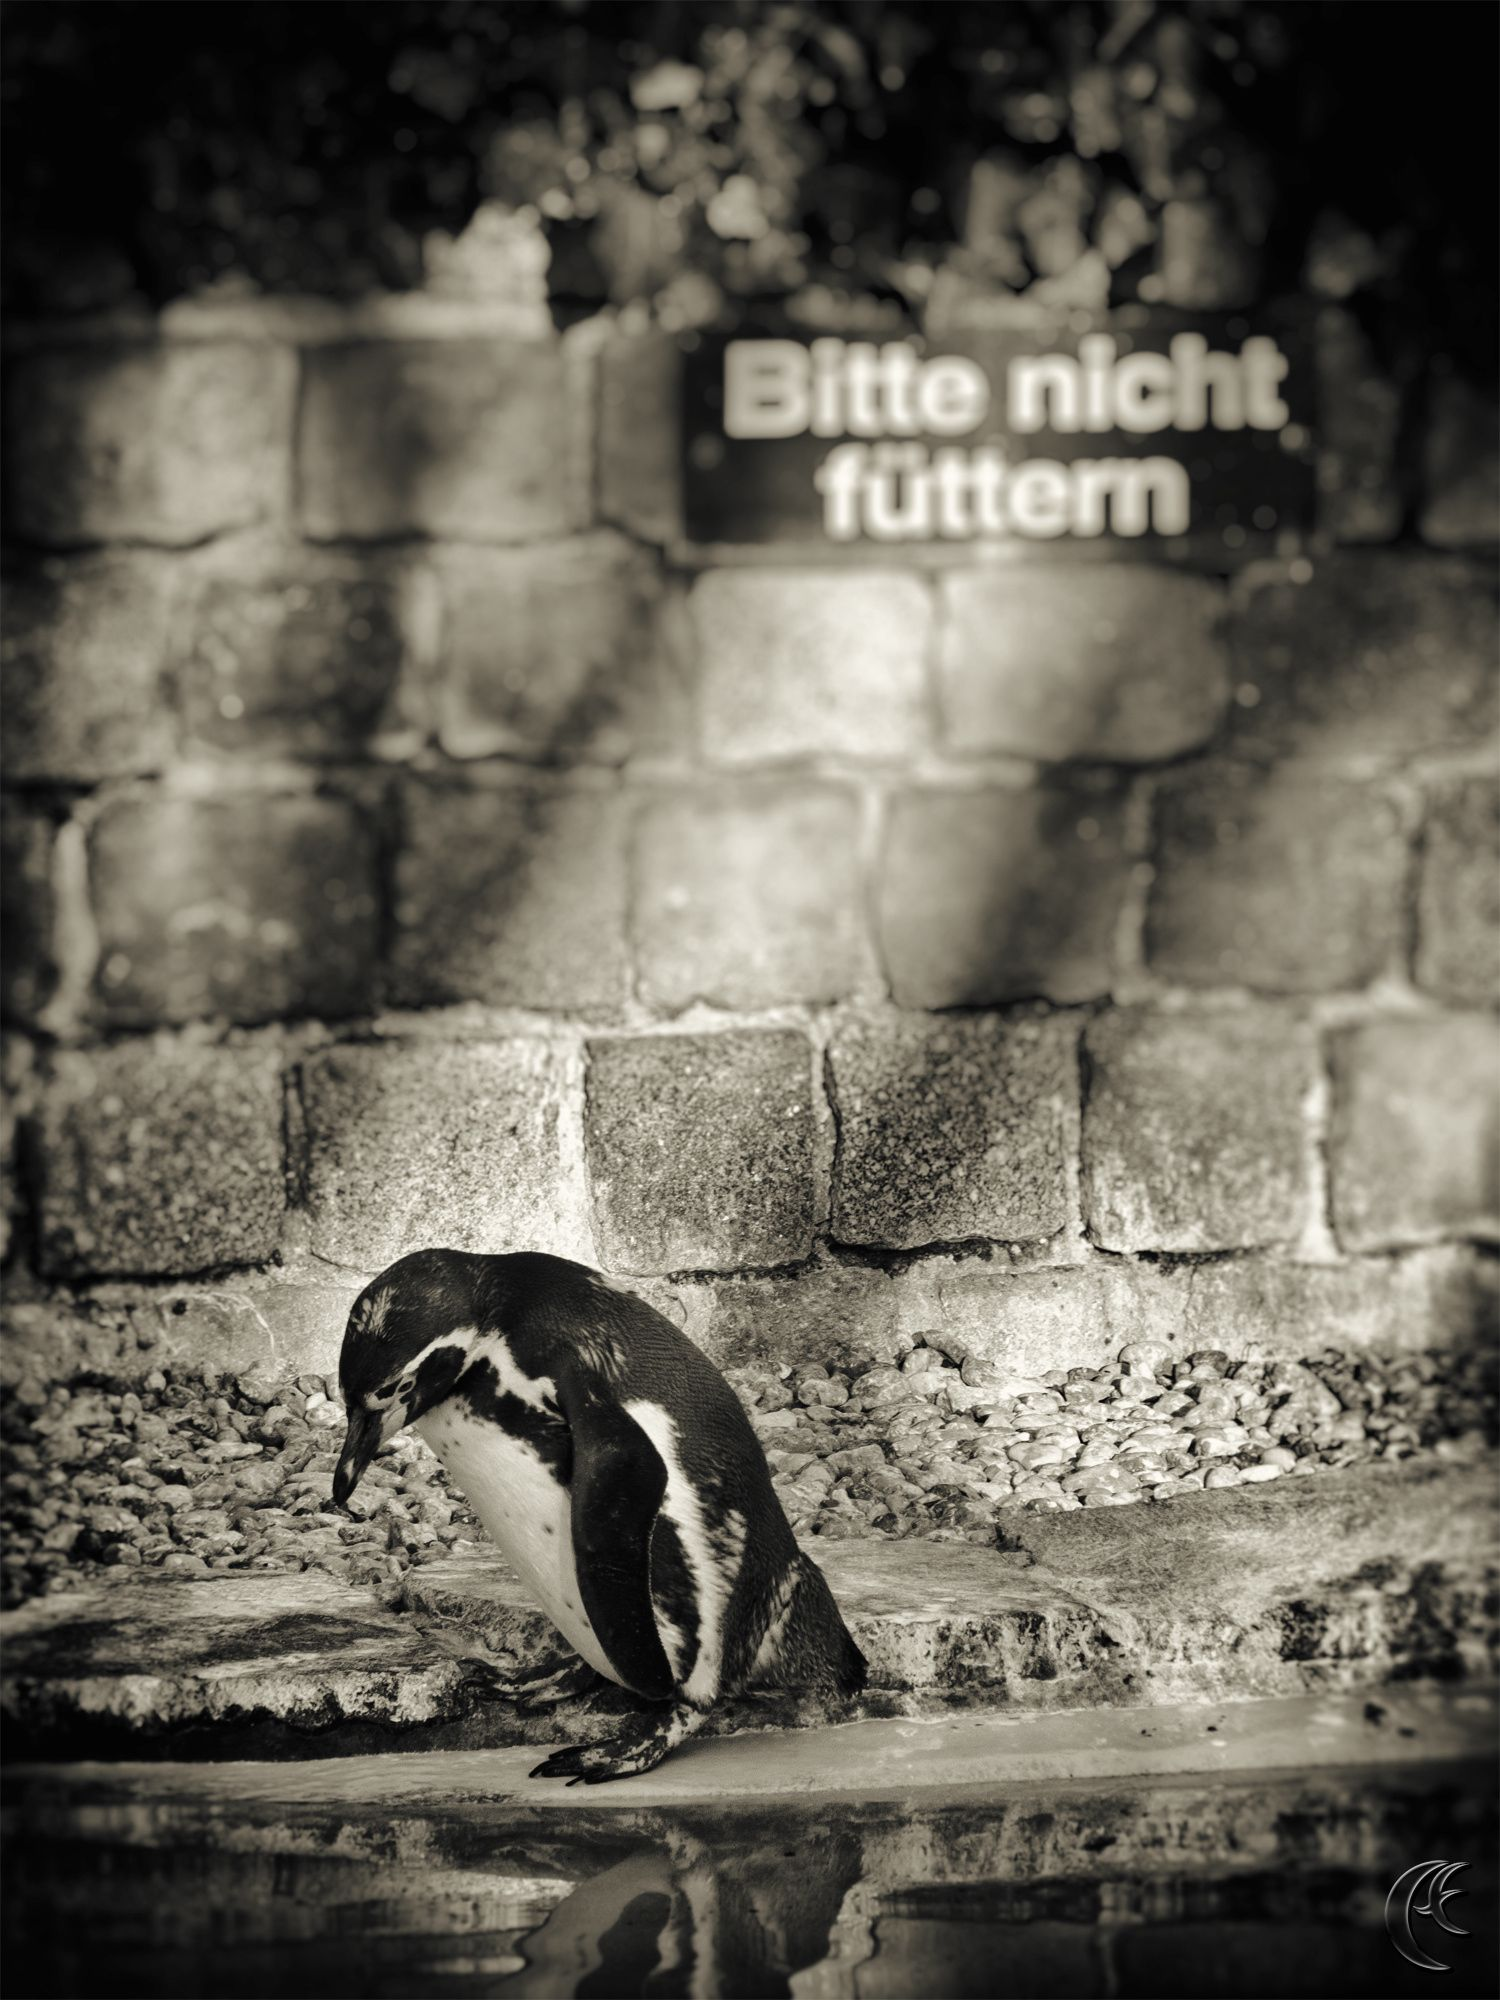 Do not feed the animals! by anDrea Fritz on 500px